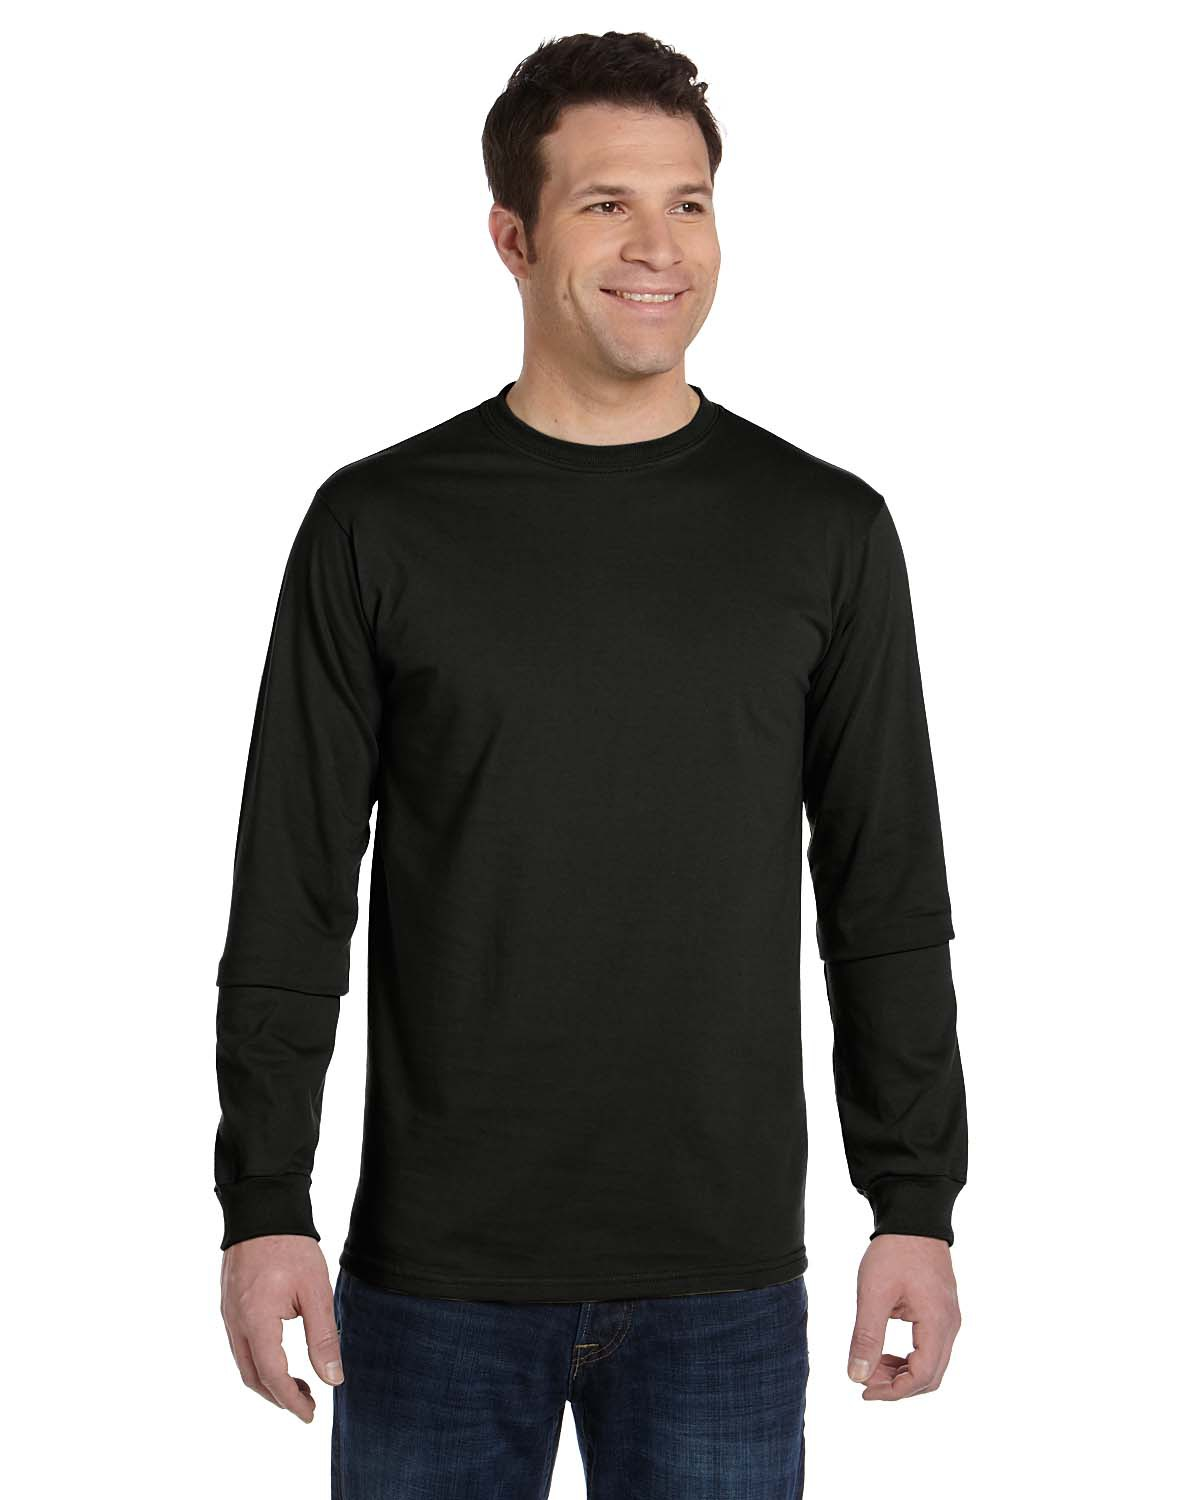 Cotton long sleeve t shirts men is shirt for Mens 100 cotton long sleeve t shirts